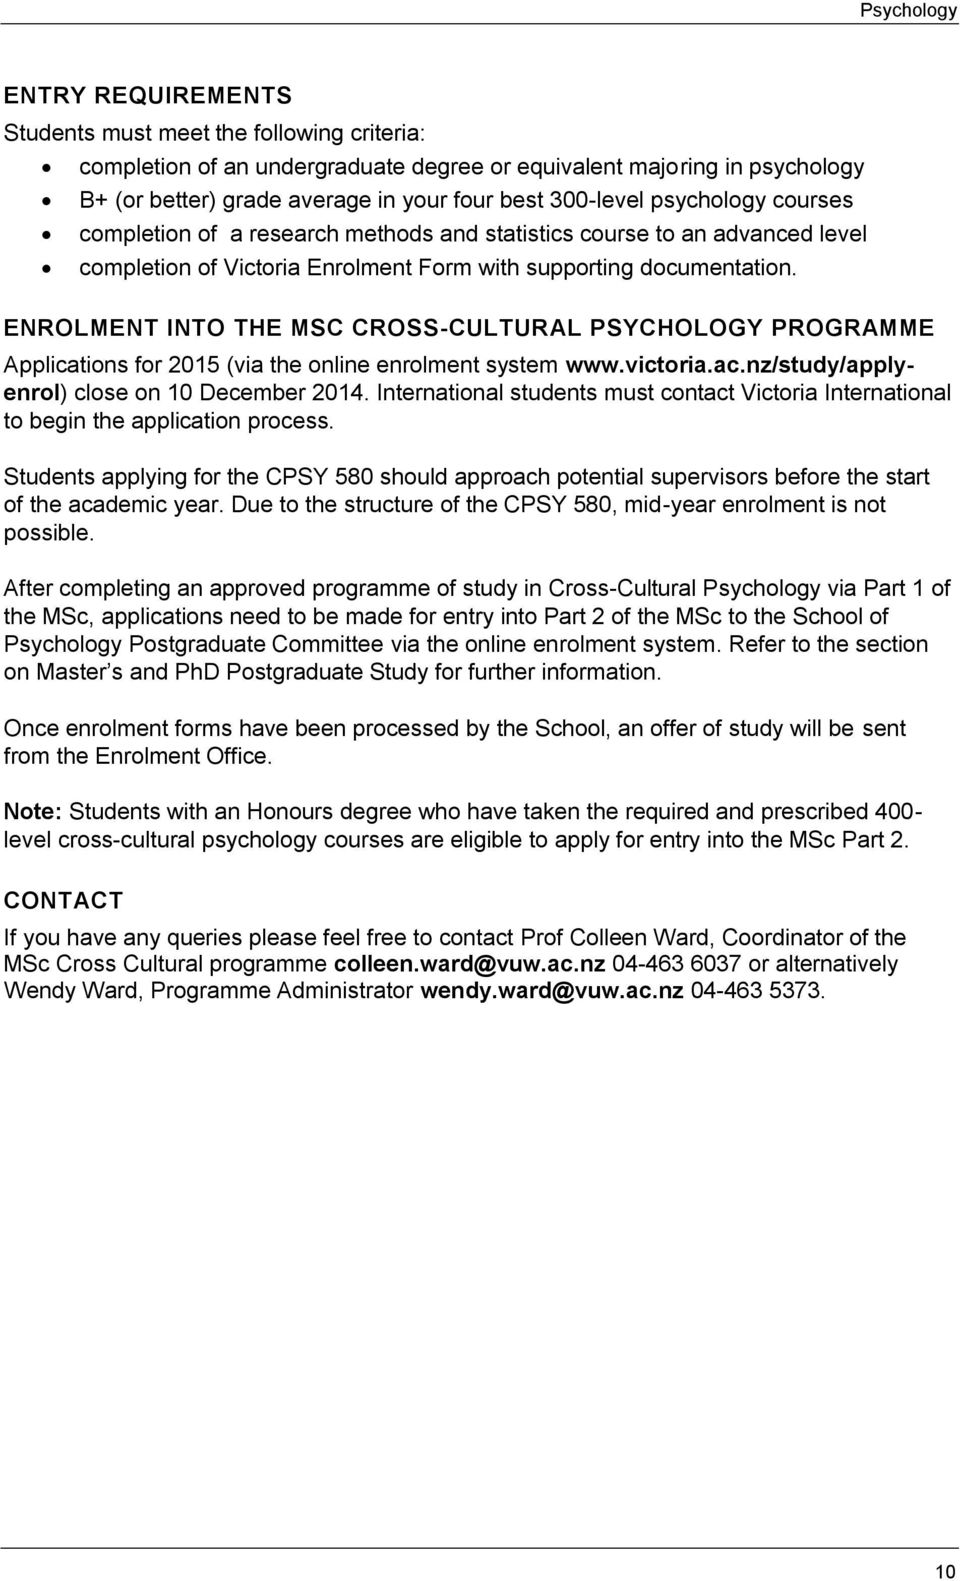 ENROLMENT INTO THE MSC CROSS-CULTURAL PSYCHOLOGY PROGRAMME Applications for 2015 (via the online enrolment system www.victoria.ac.nz/study/applyenrol) close on 10 December 2014.